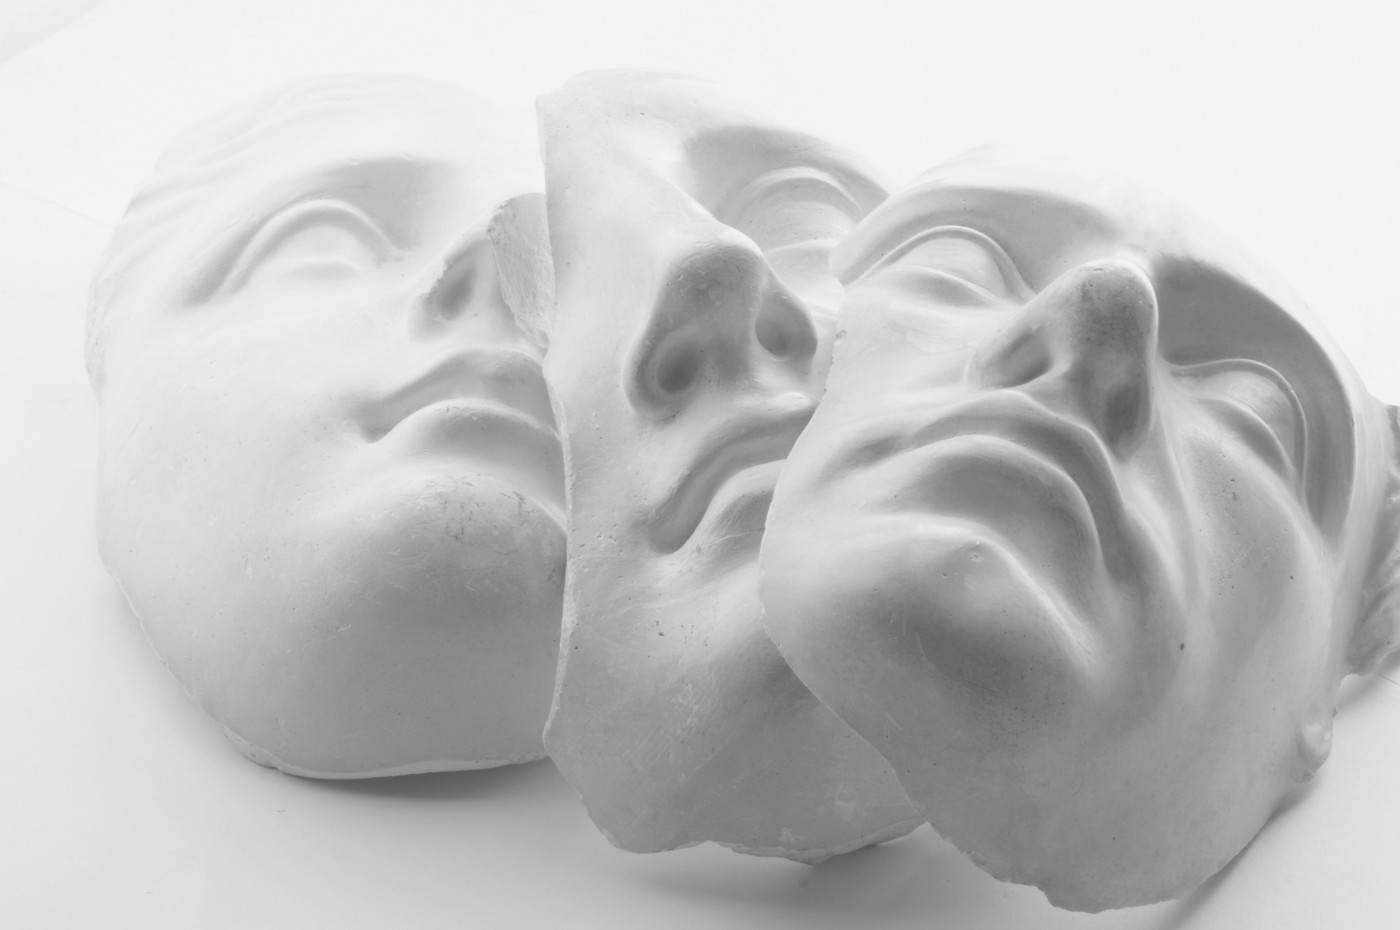 A photo of three white face masks (the marble kind, not the skincare kind).